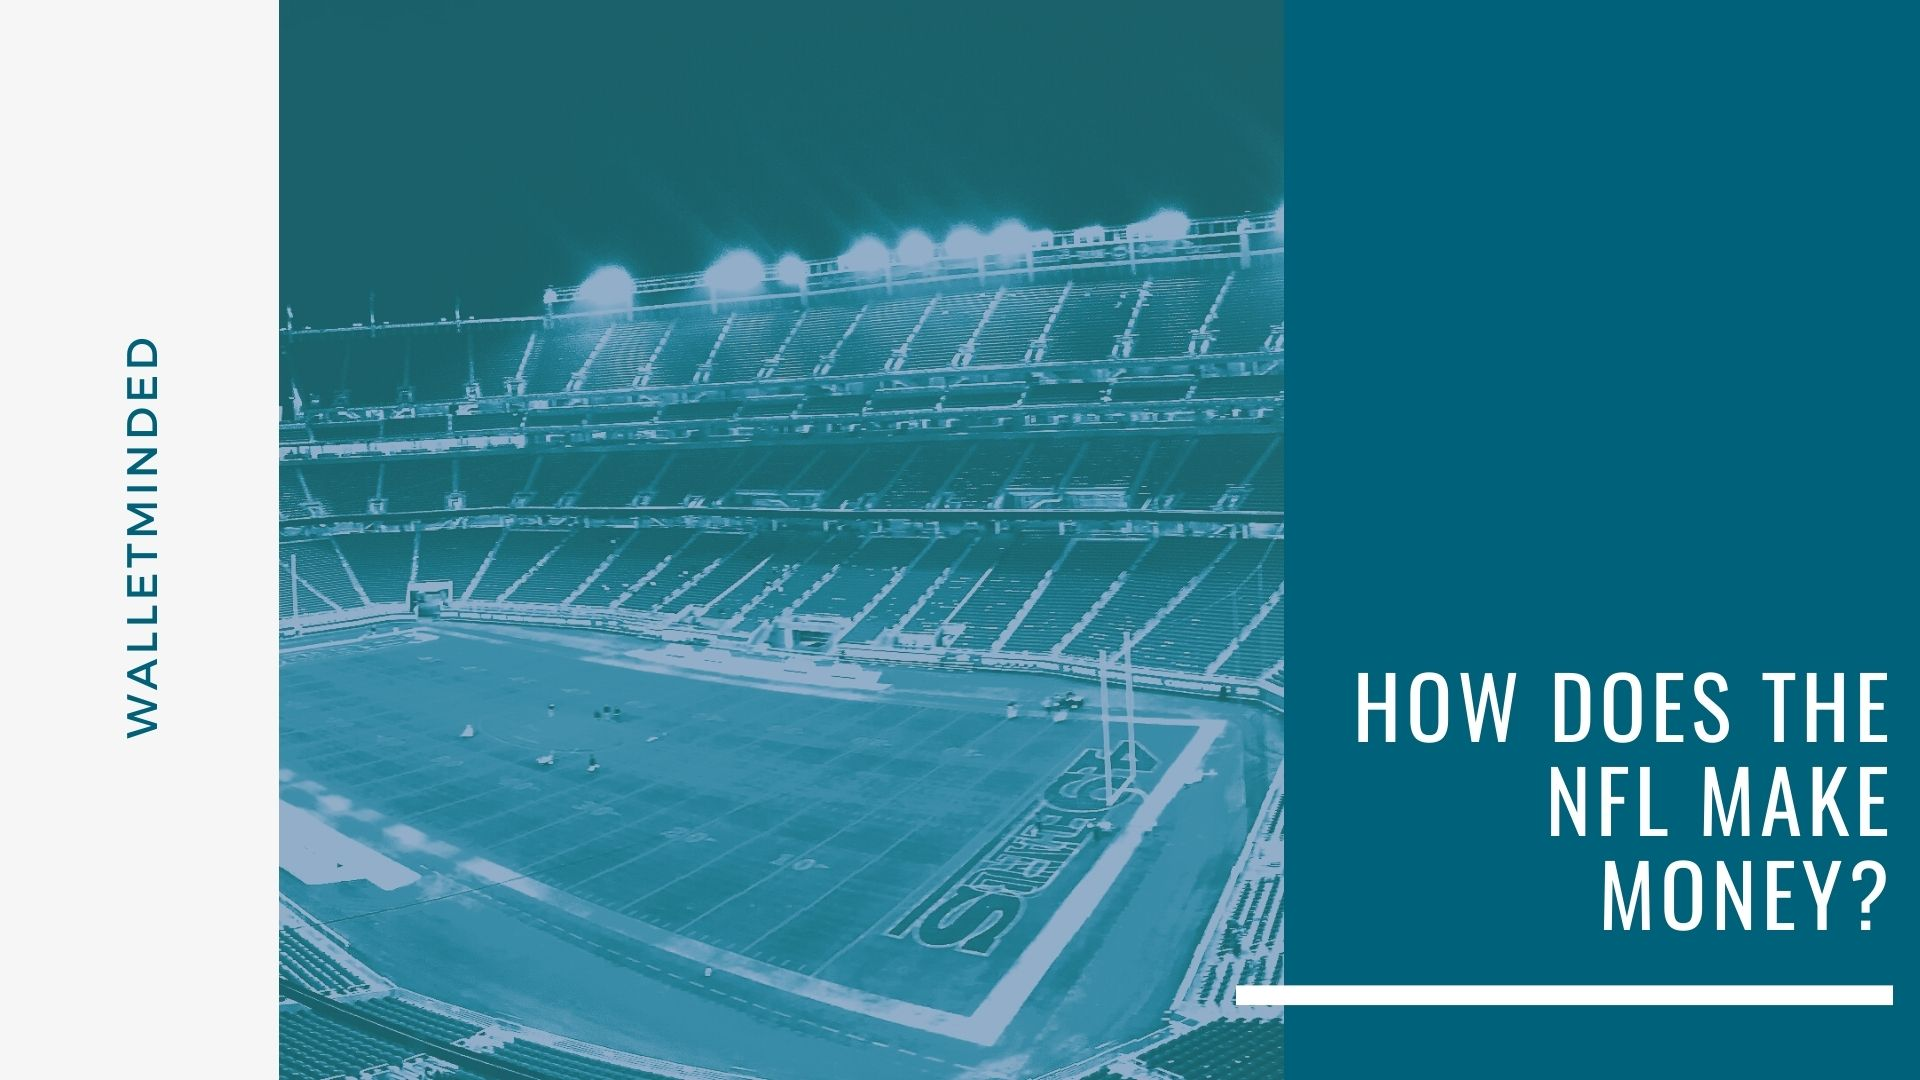 How Does The NFL Make Money?